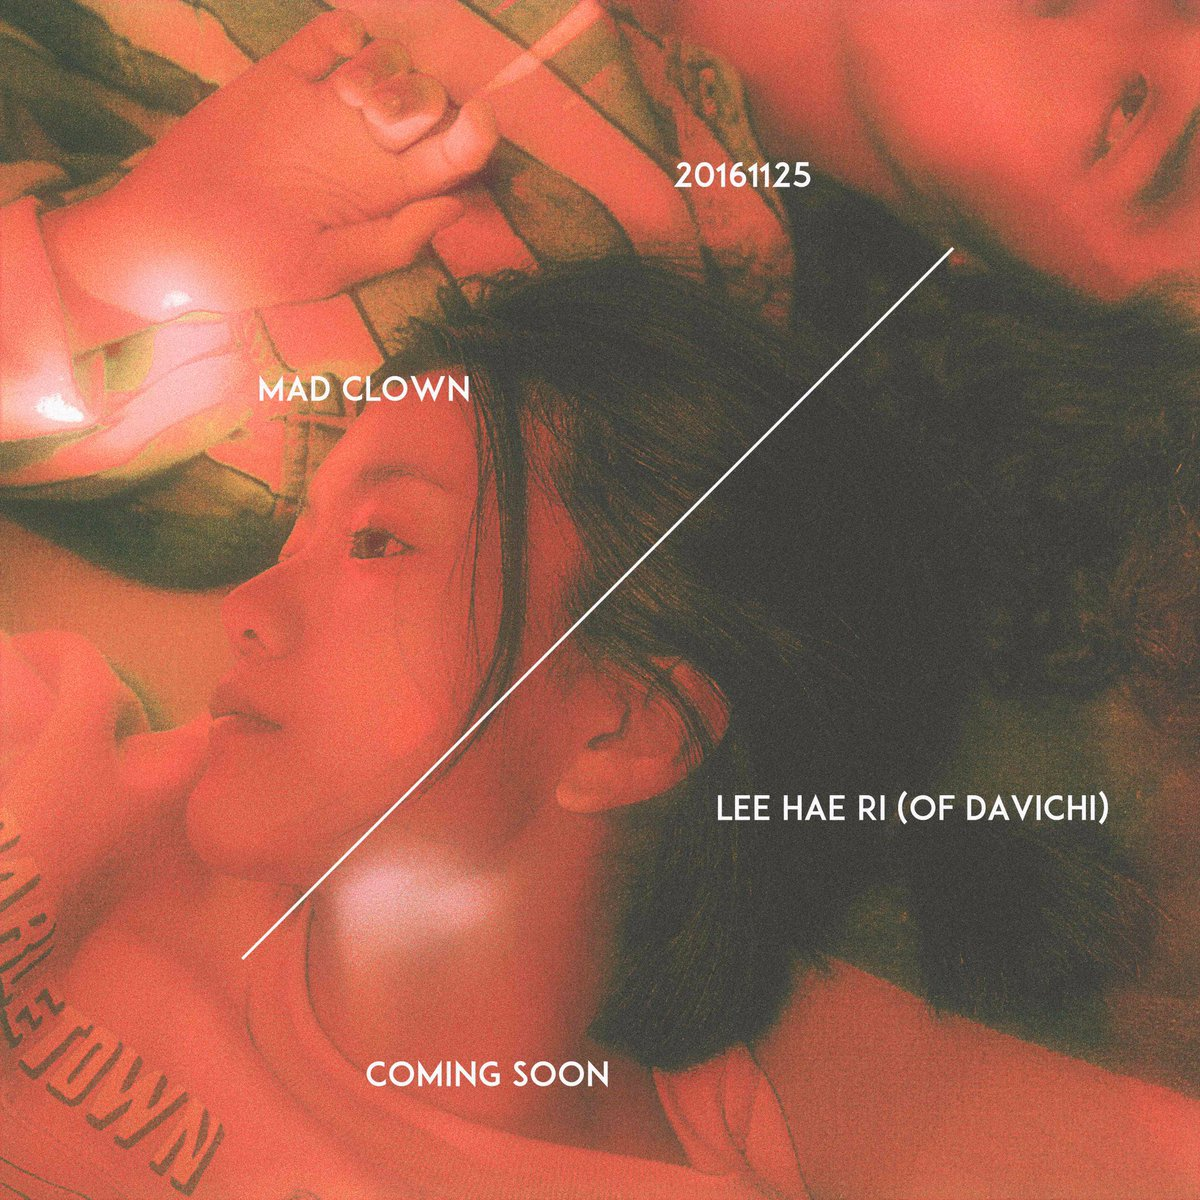 Mad Clown Drops Teaser For New Release Featuring DAVICHI's Lee Hae Ri